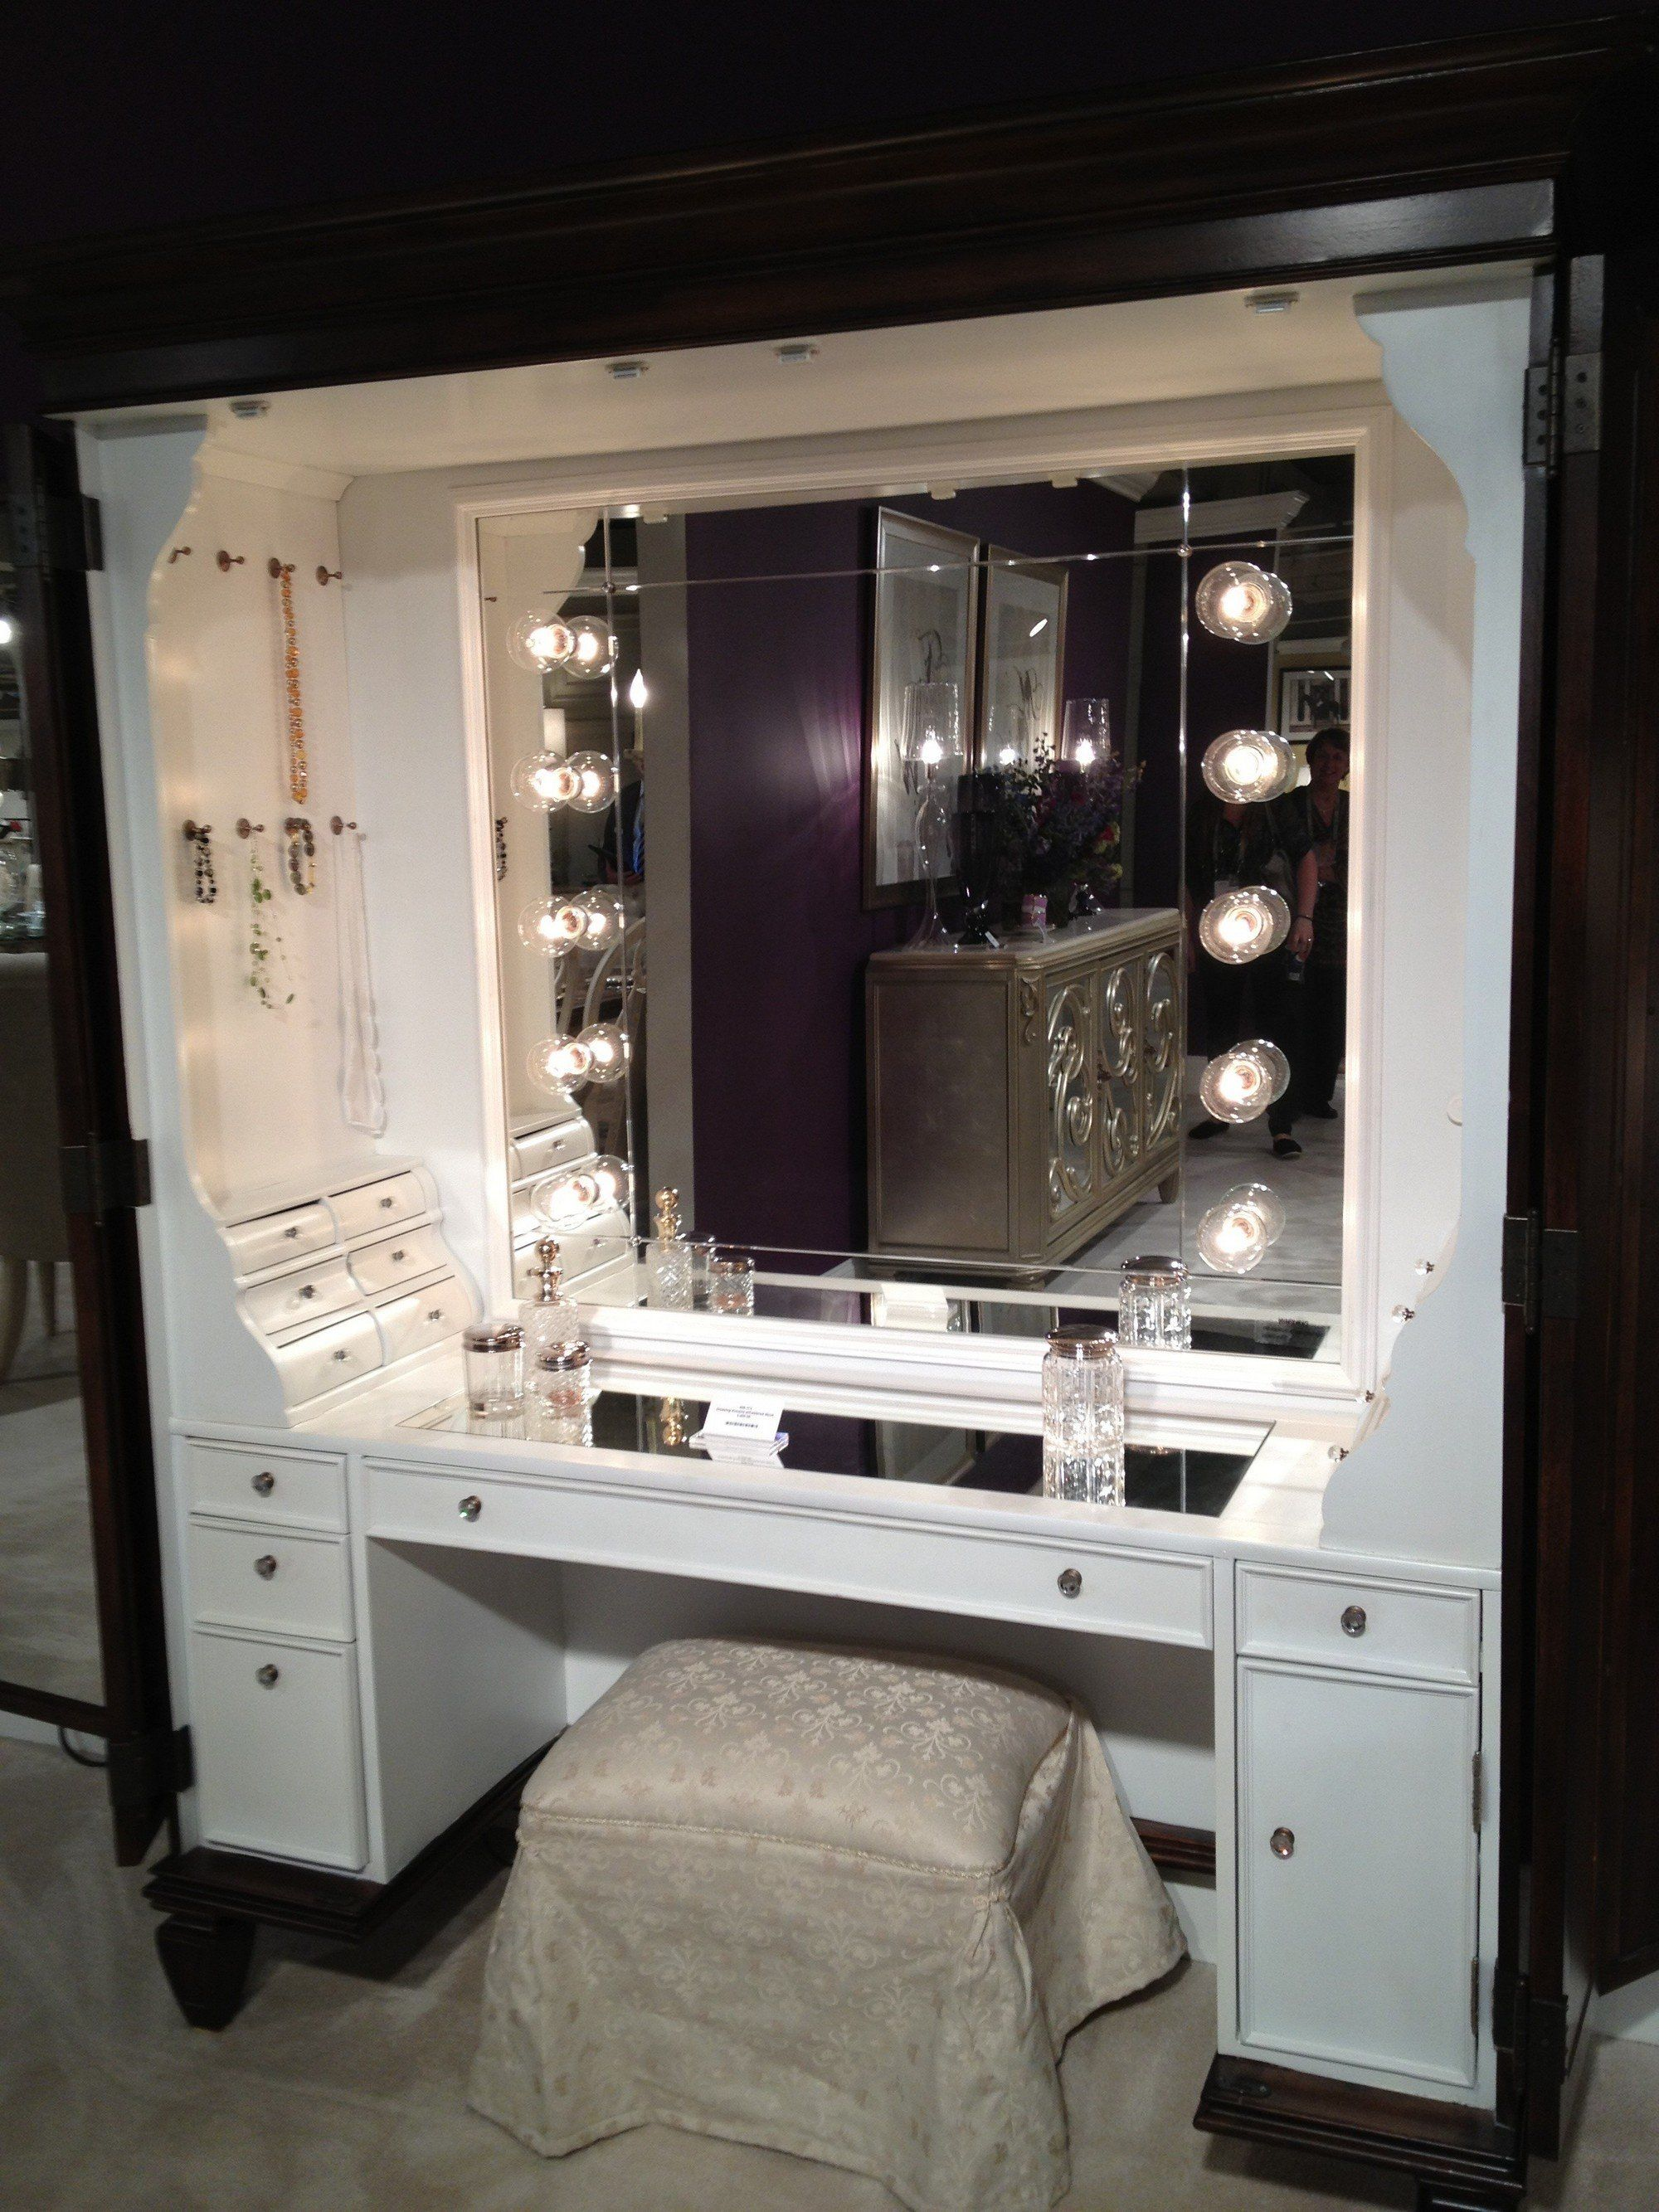 Delightful Furniture, Large Modern Makeup Vanity Dressing Table With Glass Top And  Drawer Plus Makeup Storage Painted With White Color Plus Lights Around  Mirror Ideas ...